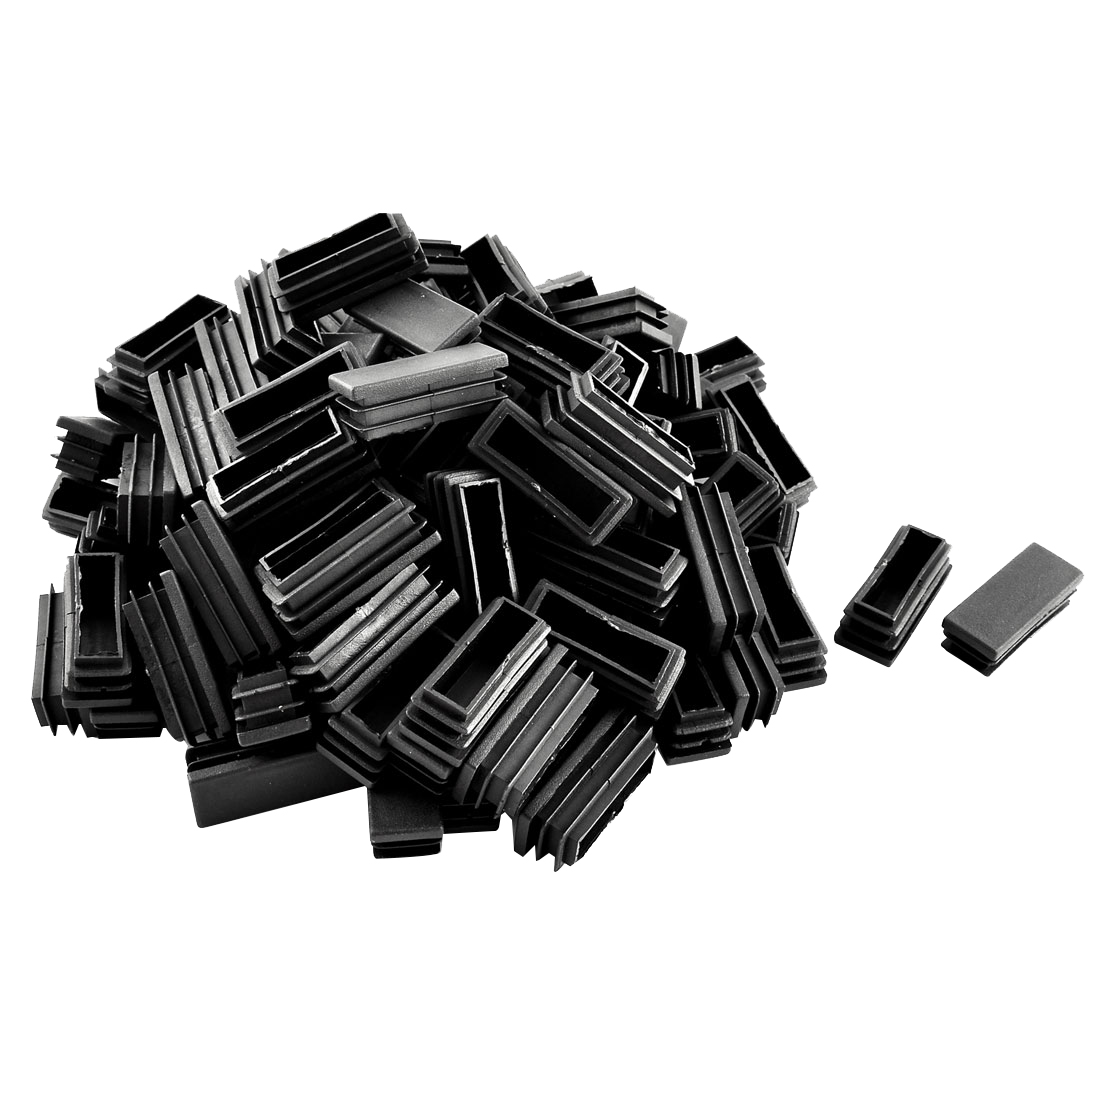 Plastic Rectangle Tube Inserts End Blanking Cap Black 20mm x 50mm 100 Pcs